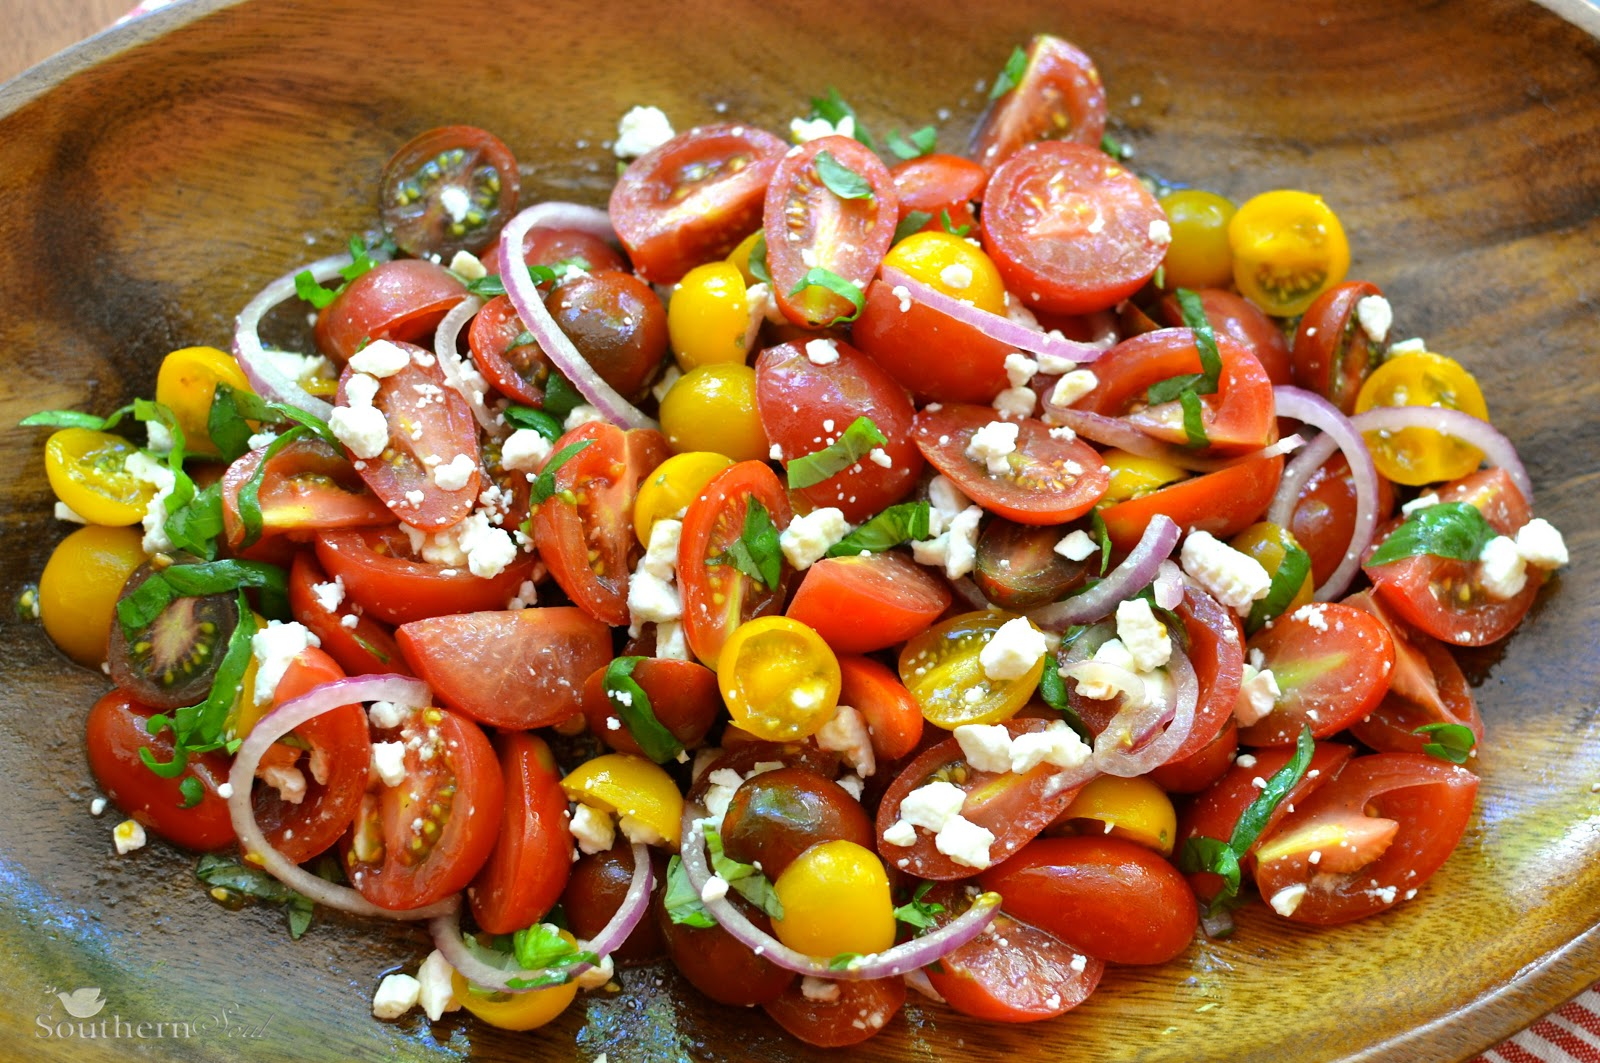 Heirloom-Tomato and Avocado Salad